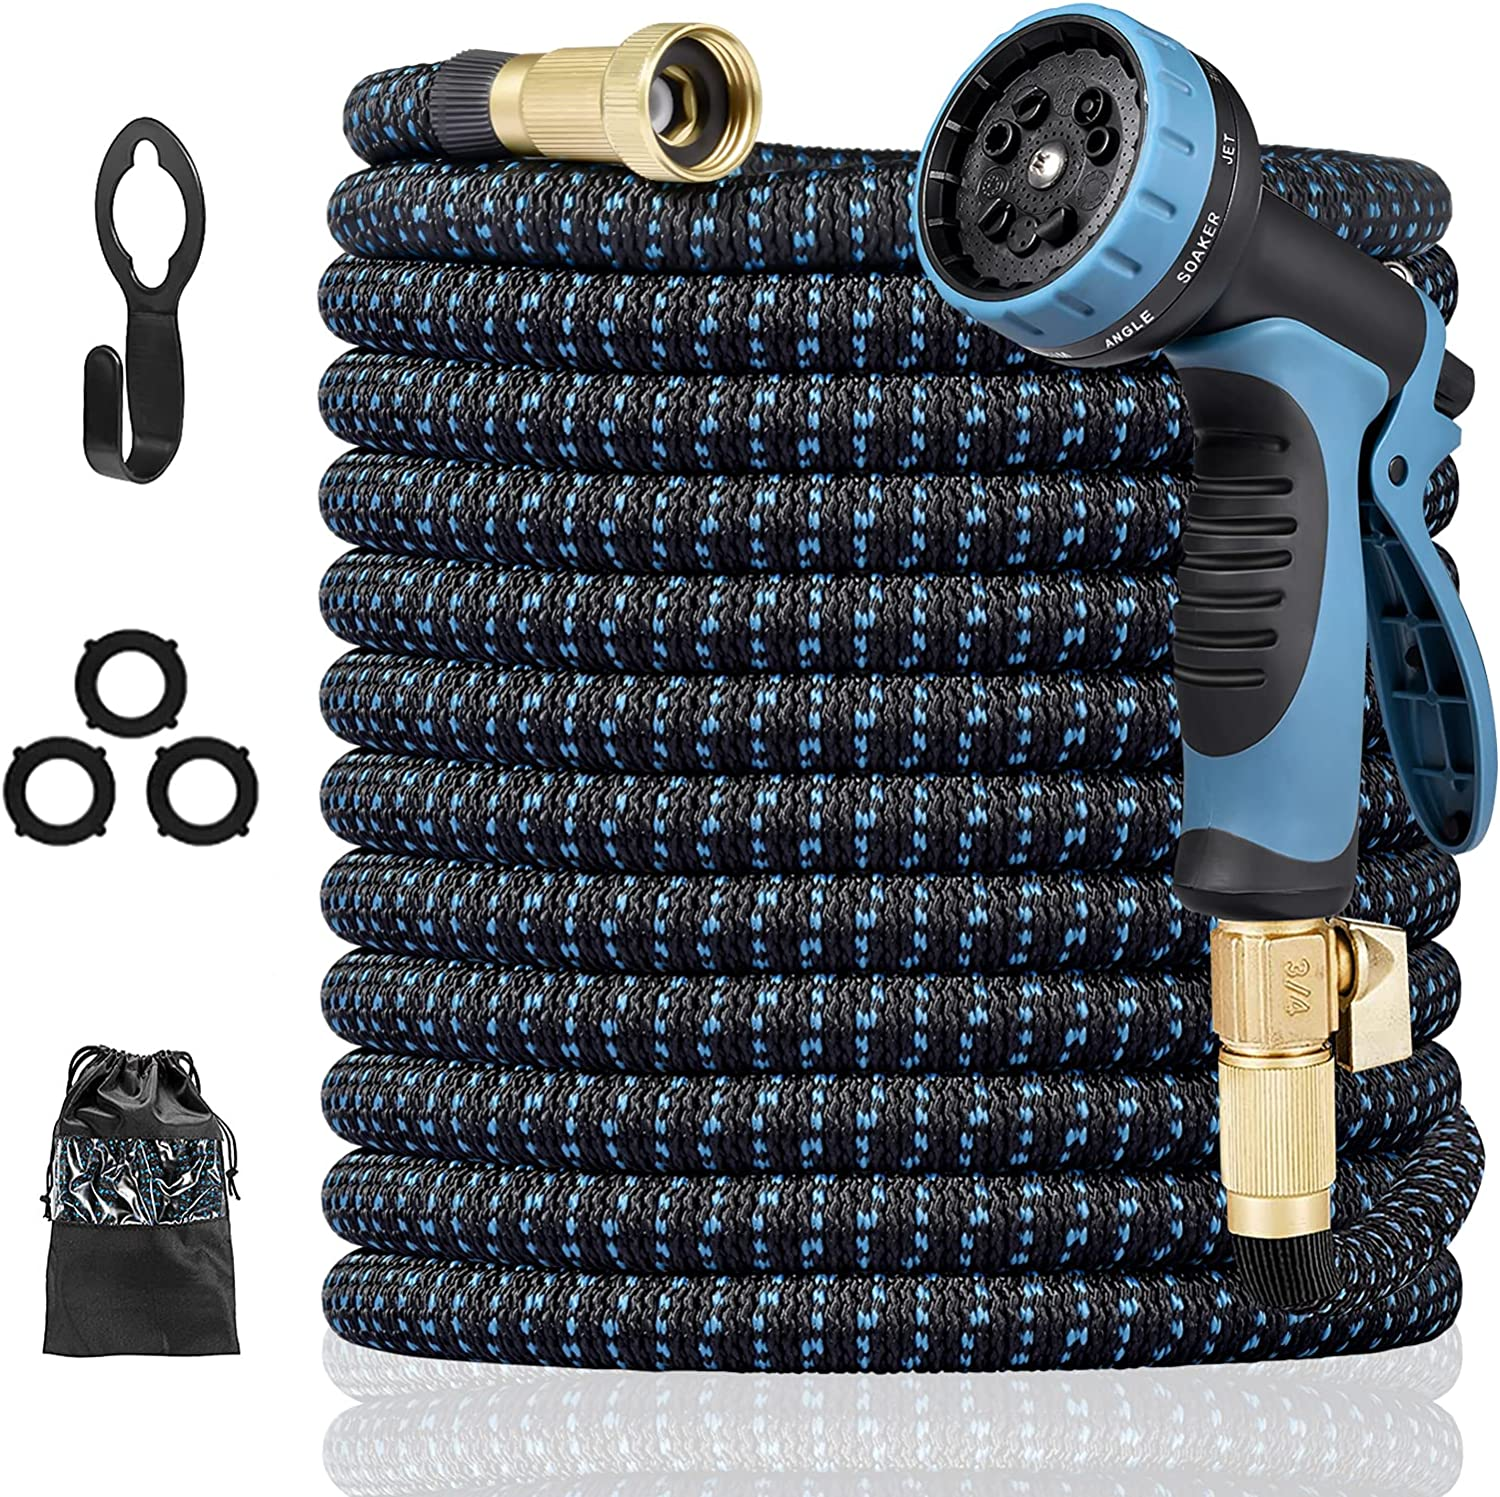 Harnestle New Free Shipping Expandable Garden Hose 50 Water ft Flexible Phoenix Mall with